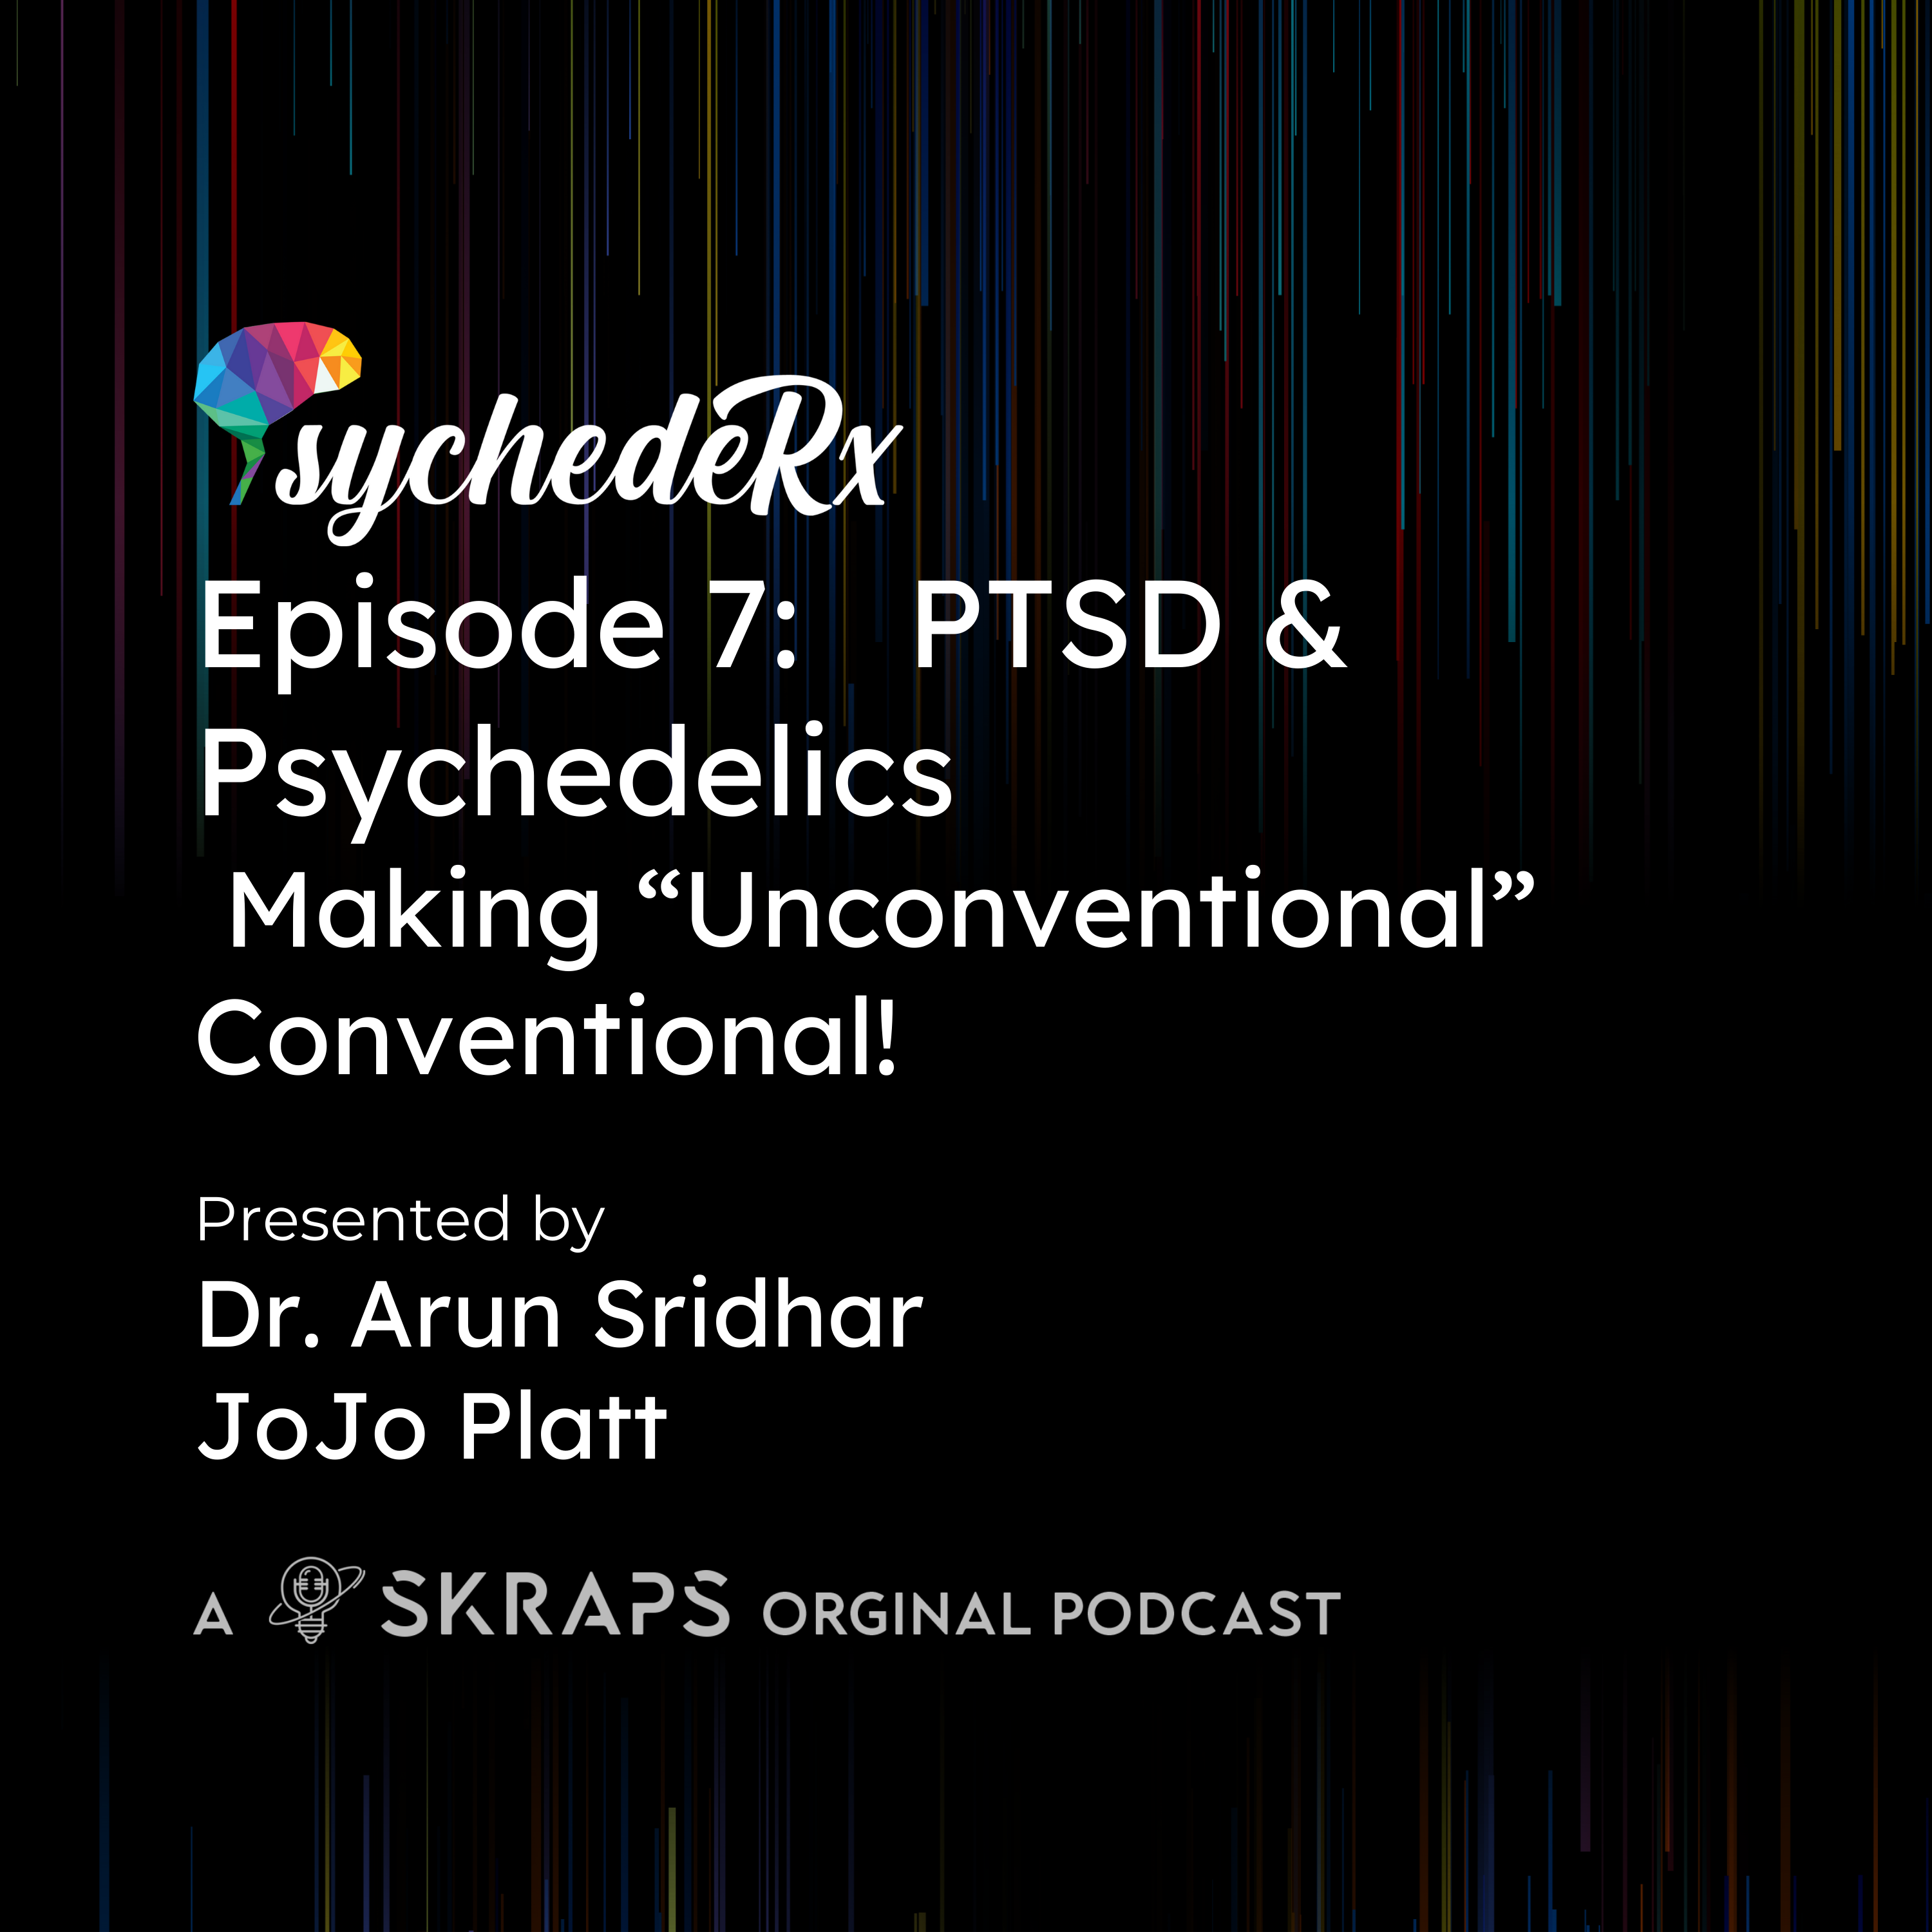 """PTSD & Psychedelics: Making """"Unconventional"""" Conventional!"""